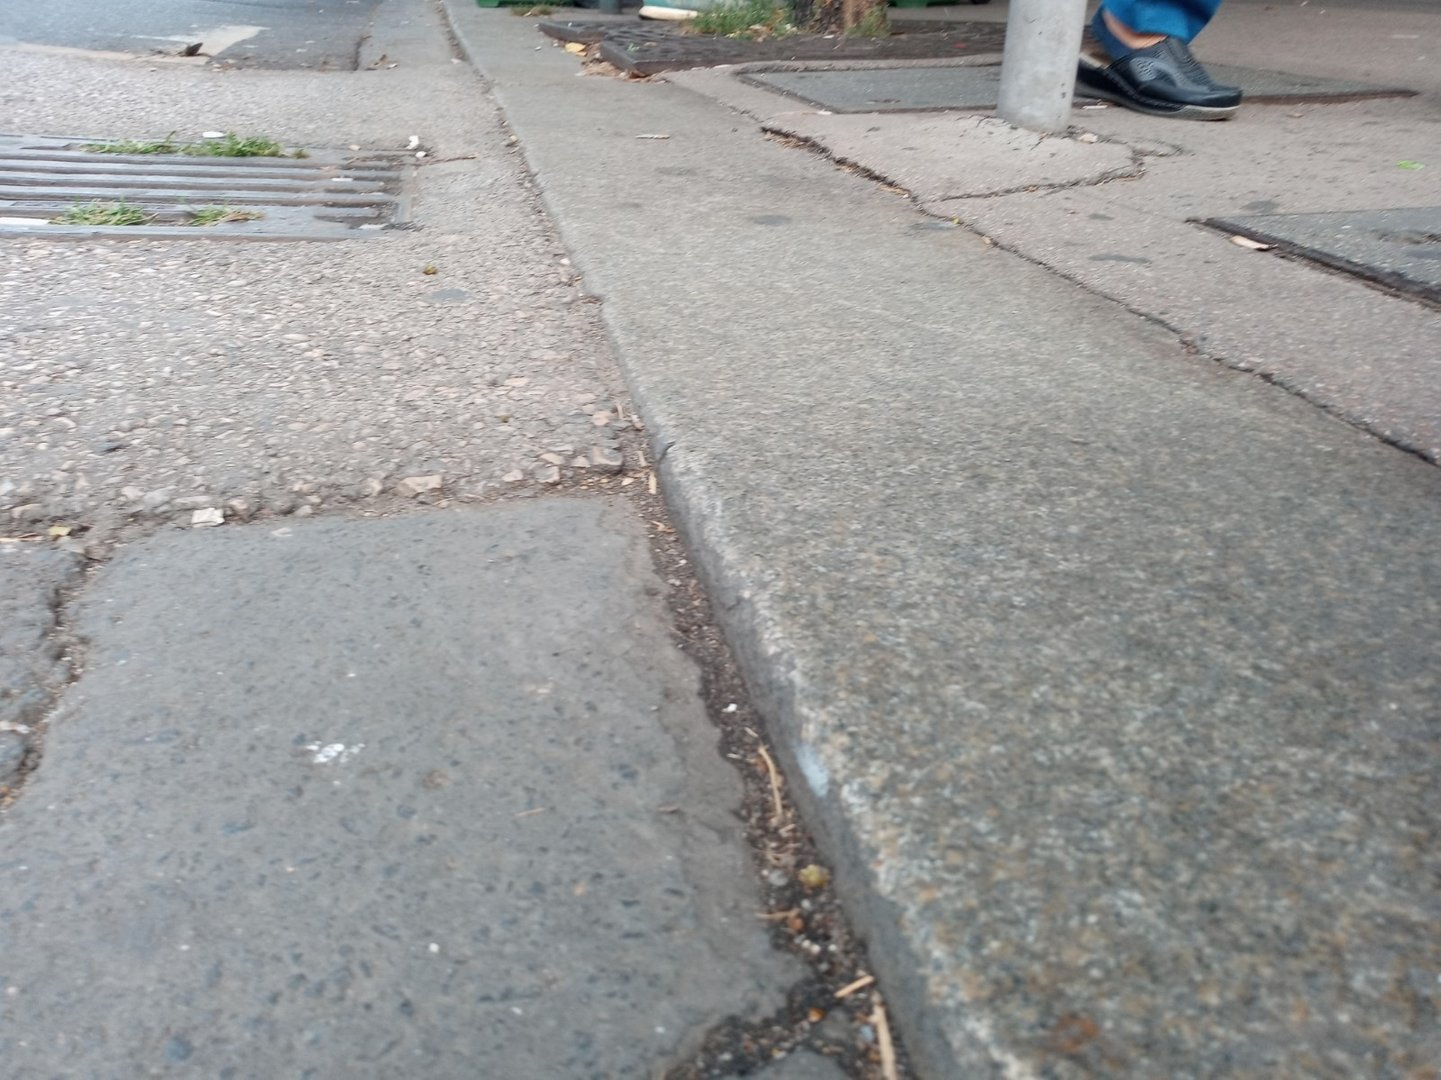 At the crossing place there is a level difference between the roadway and the pavement